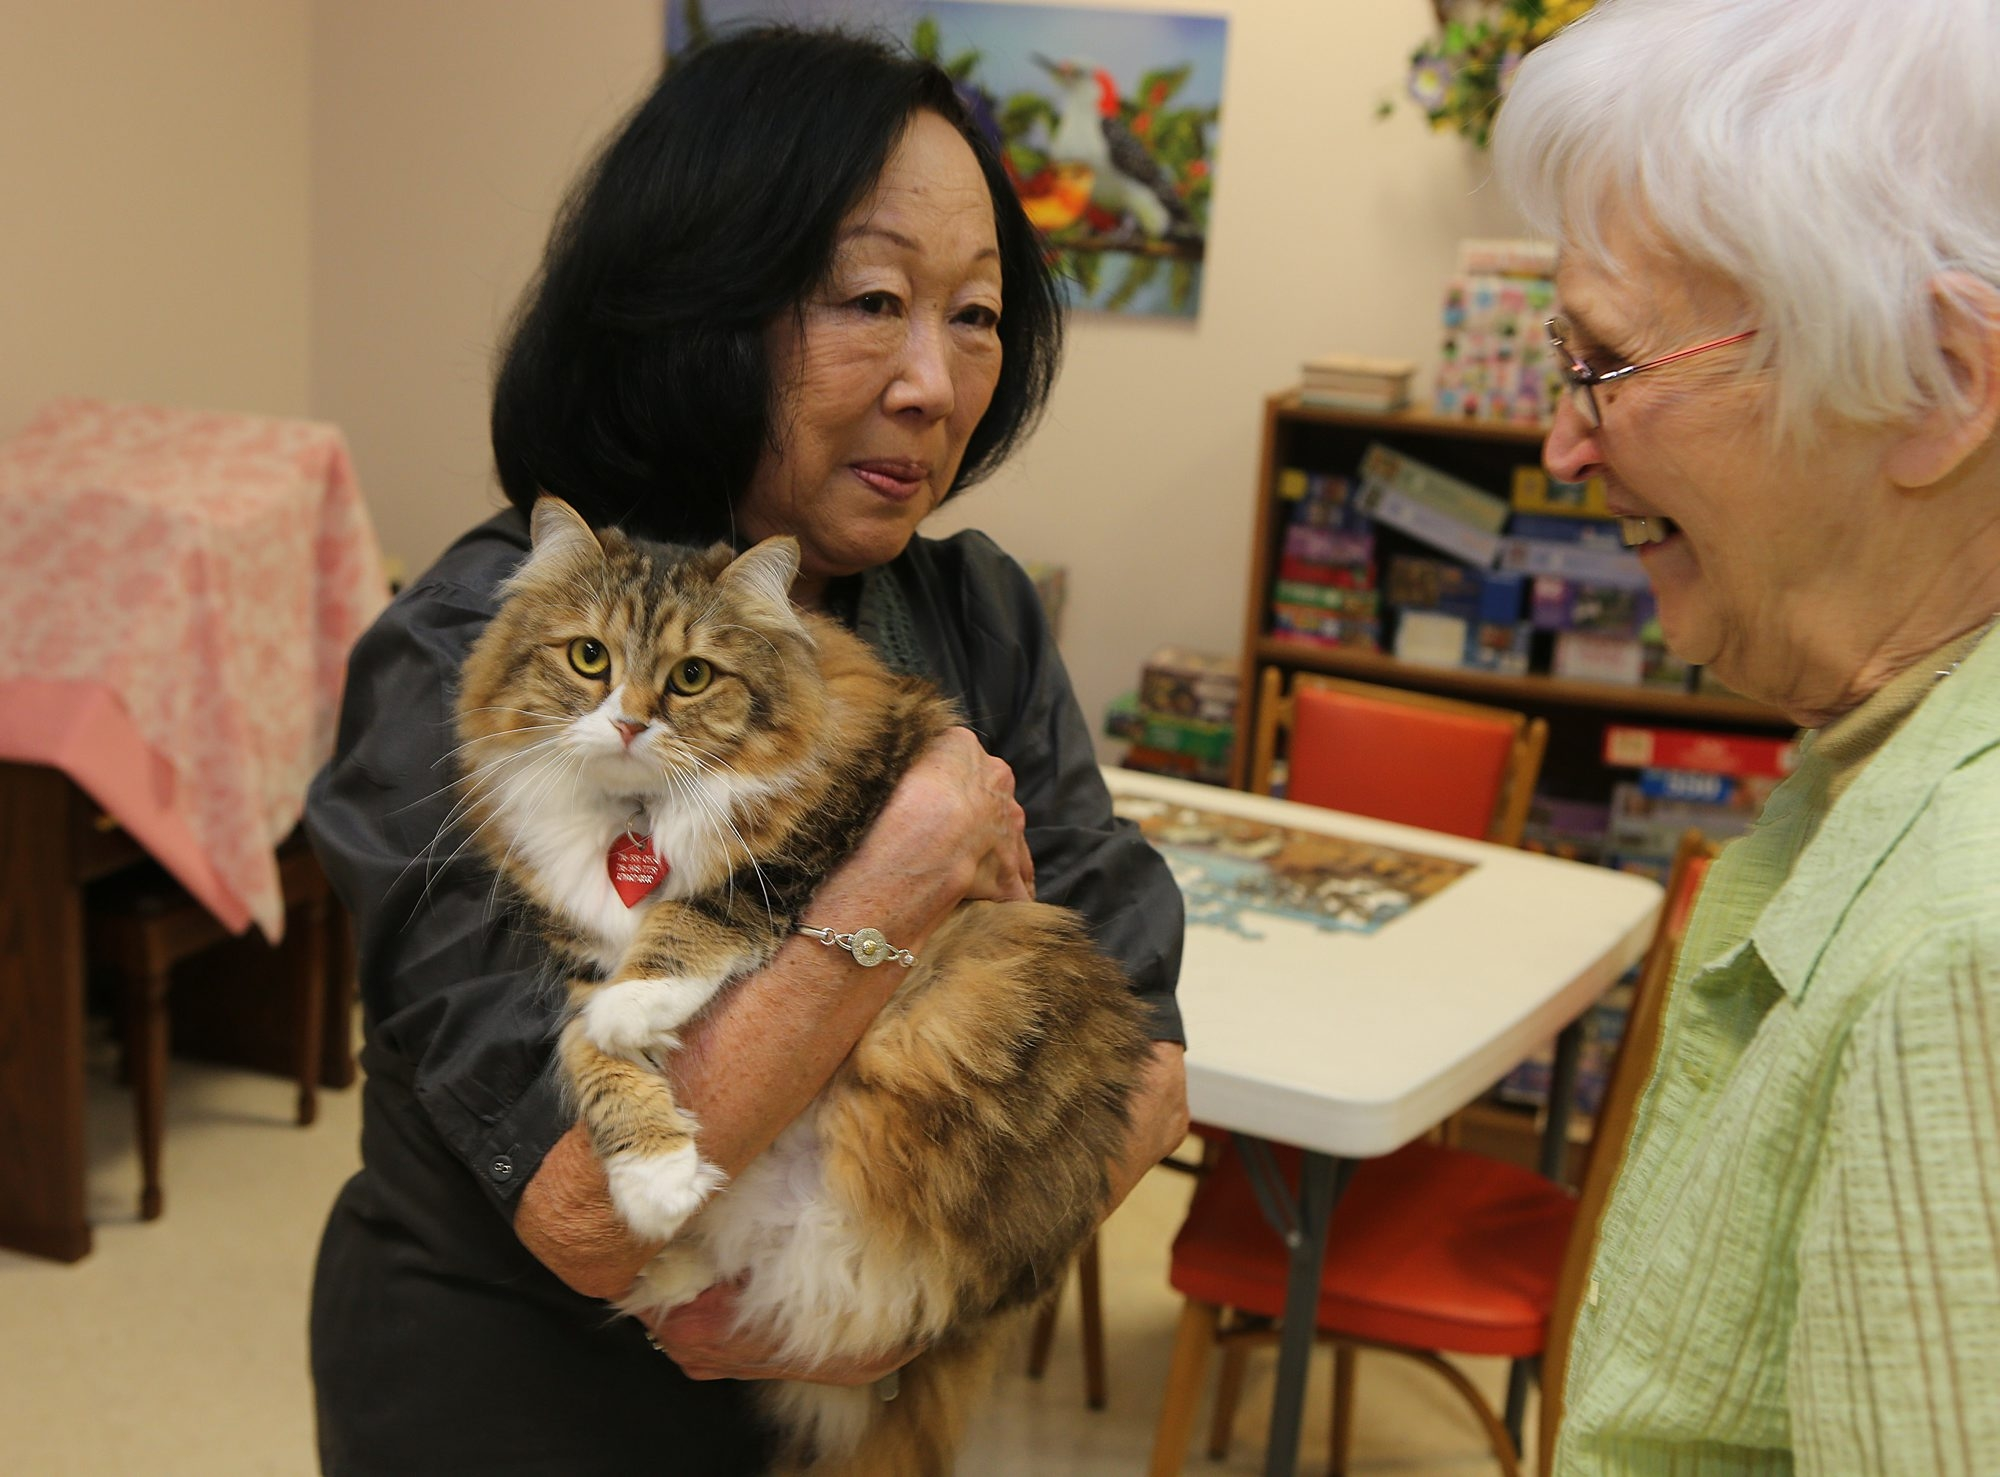 Harolyn Craig, left, holds her cat, Shu Shu, as Sister Marcia Klawon, right, looks on, at St. Mary of the Angels in Williamsville, Wednesday, April 17, 2013.  (Charles Lewis/Buffalo News)